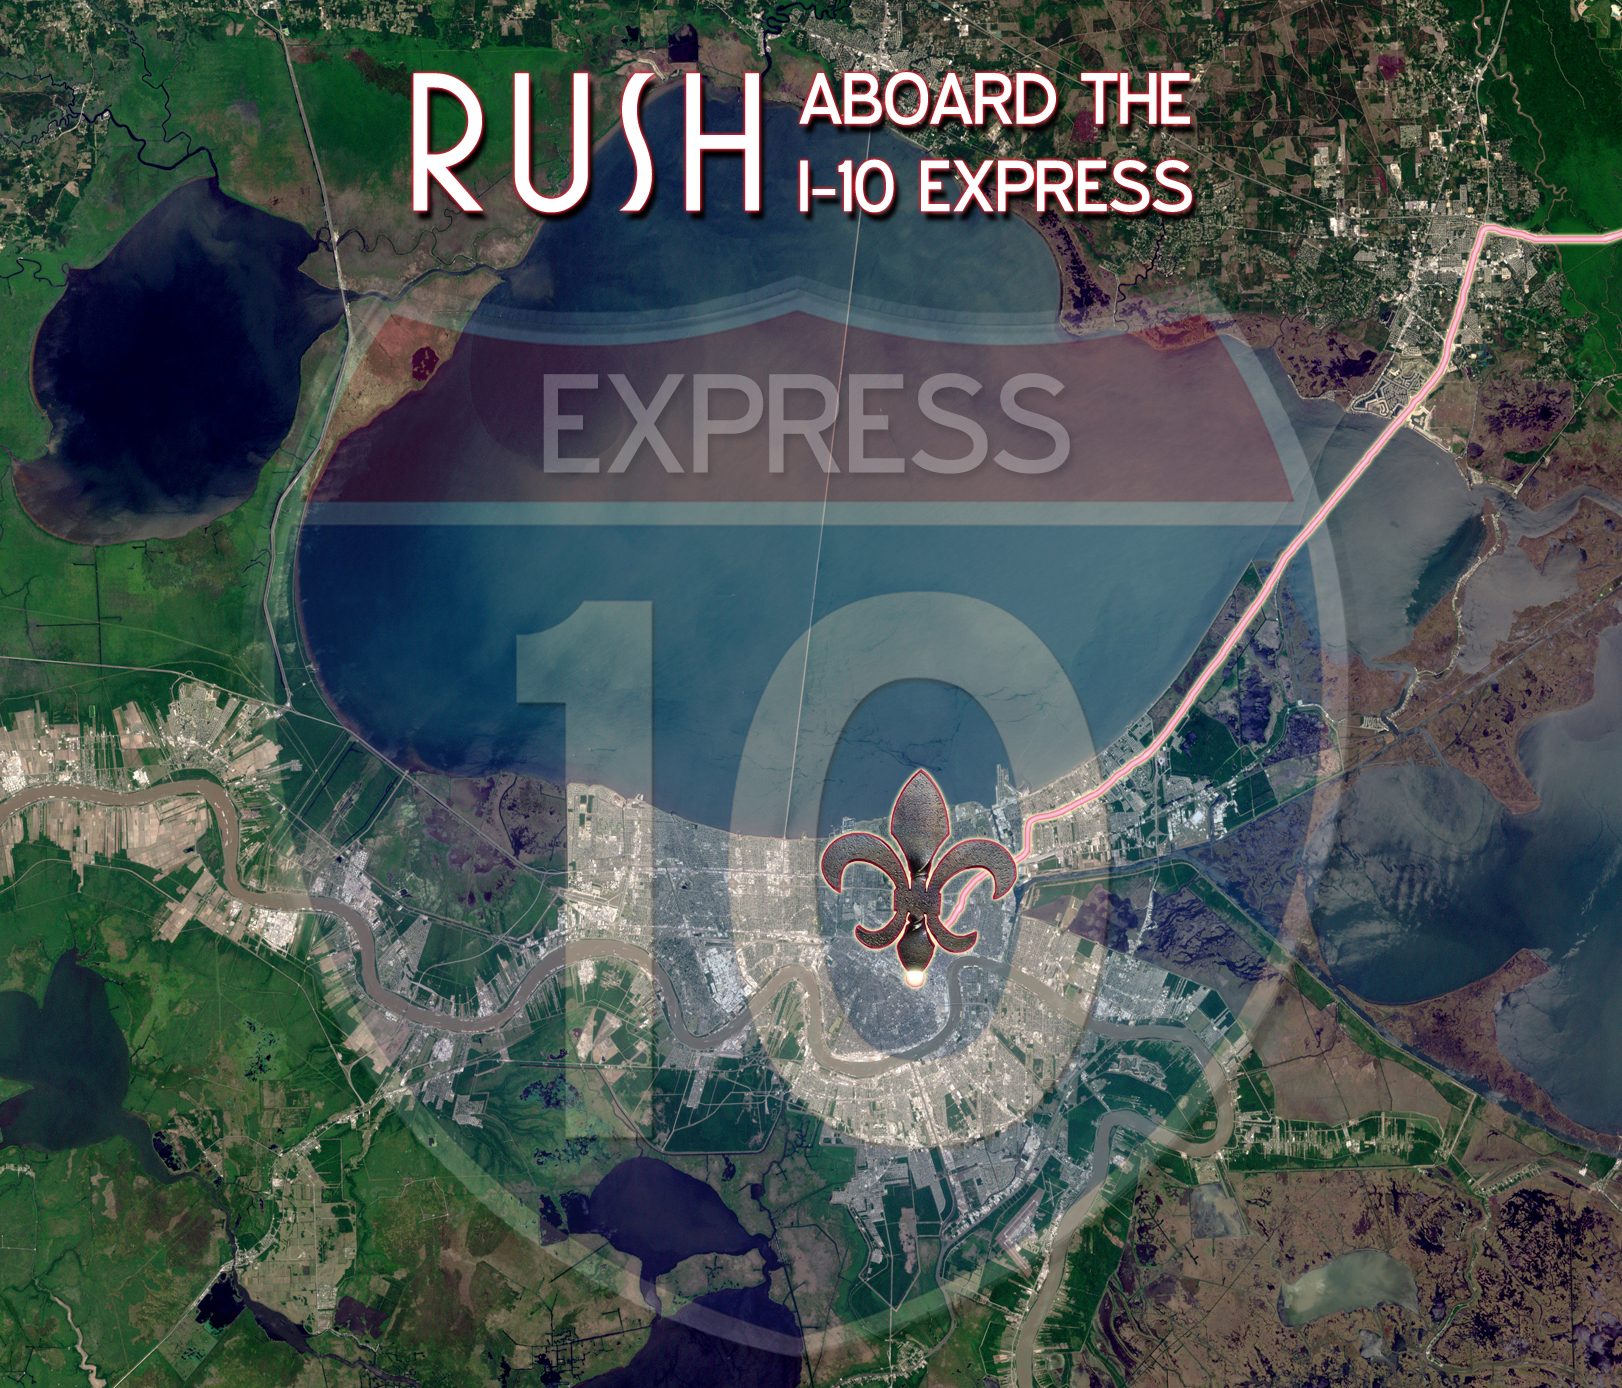 Rush - Aboard The I-10 Express